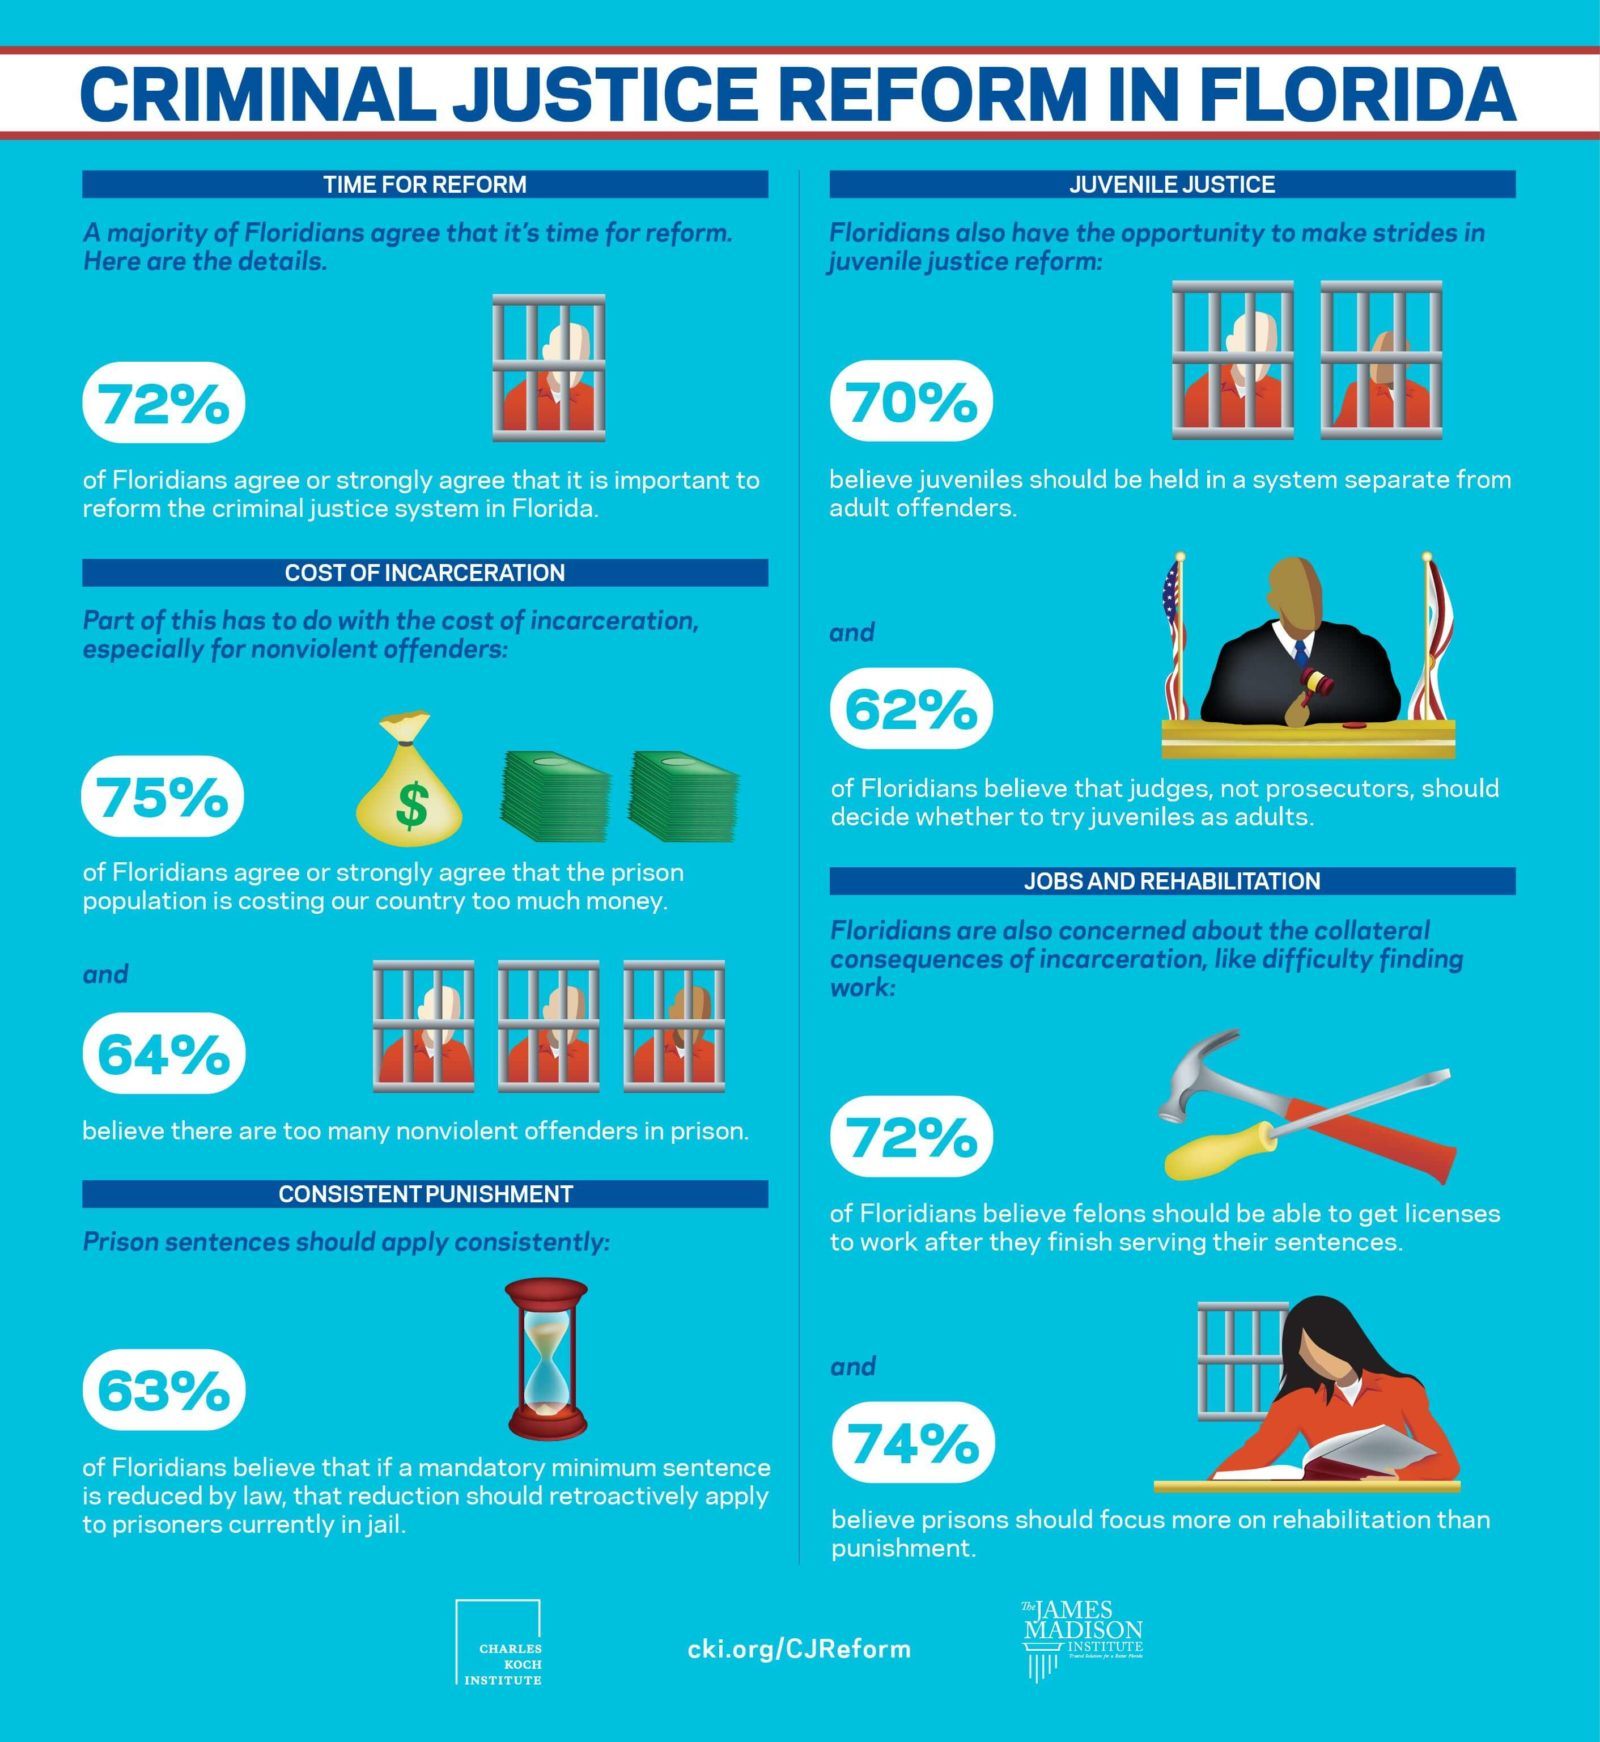 New Poll: Strong Majority of Floridians Agree The Time For Criminal Justice Reform is Now